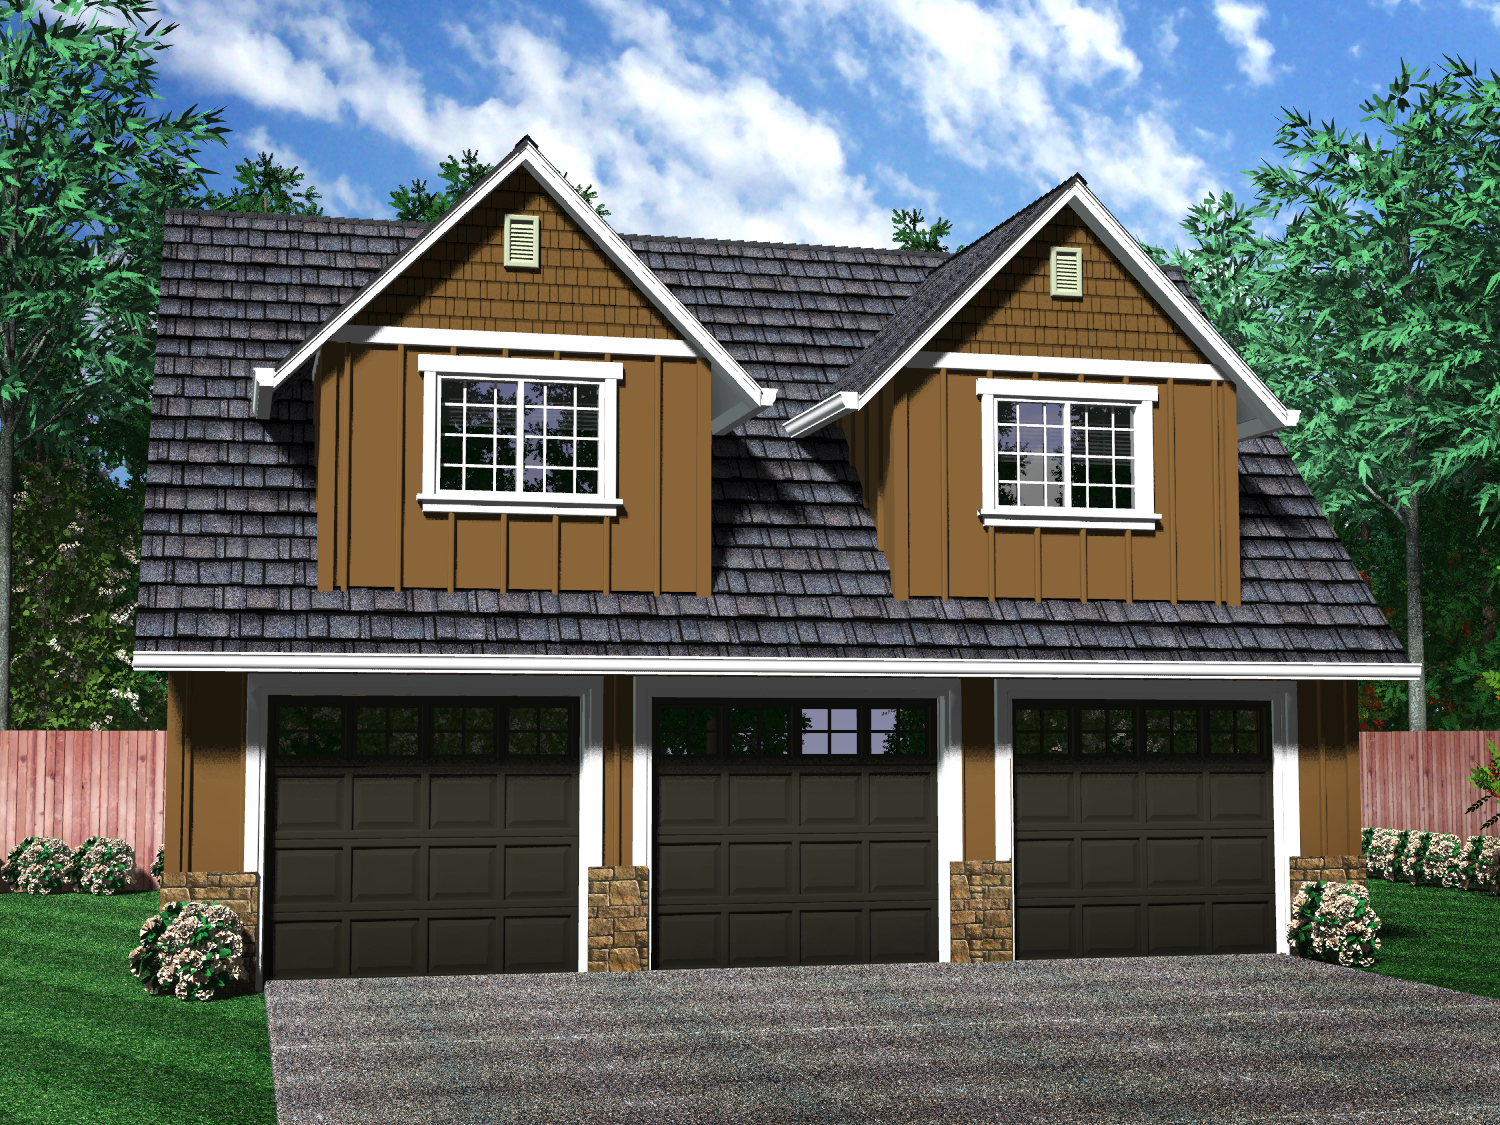 Detached garages for Three car garage house plans